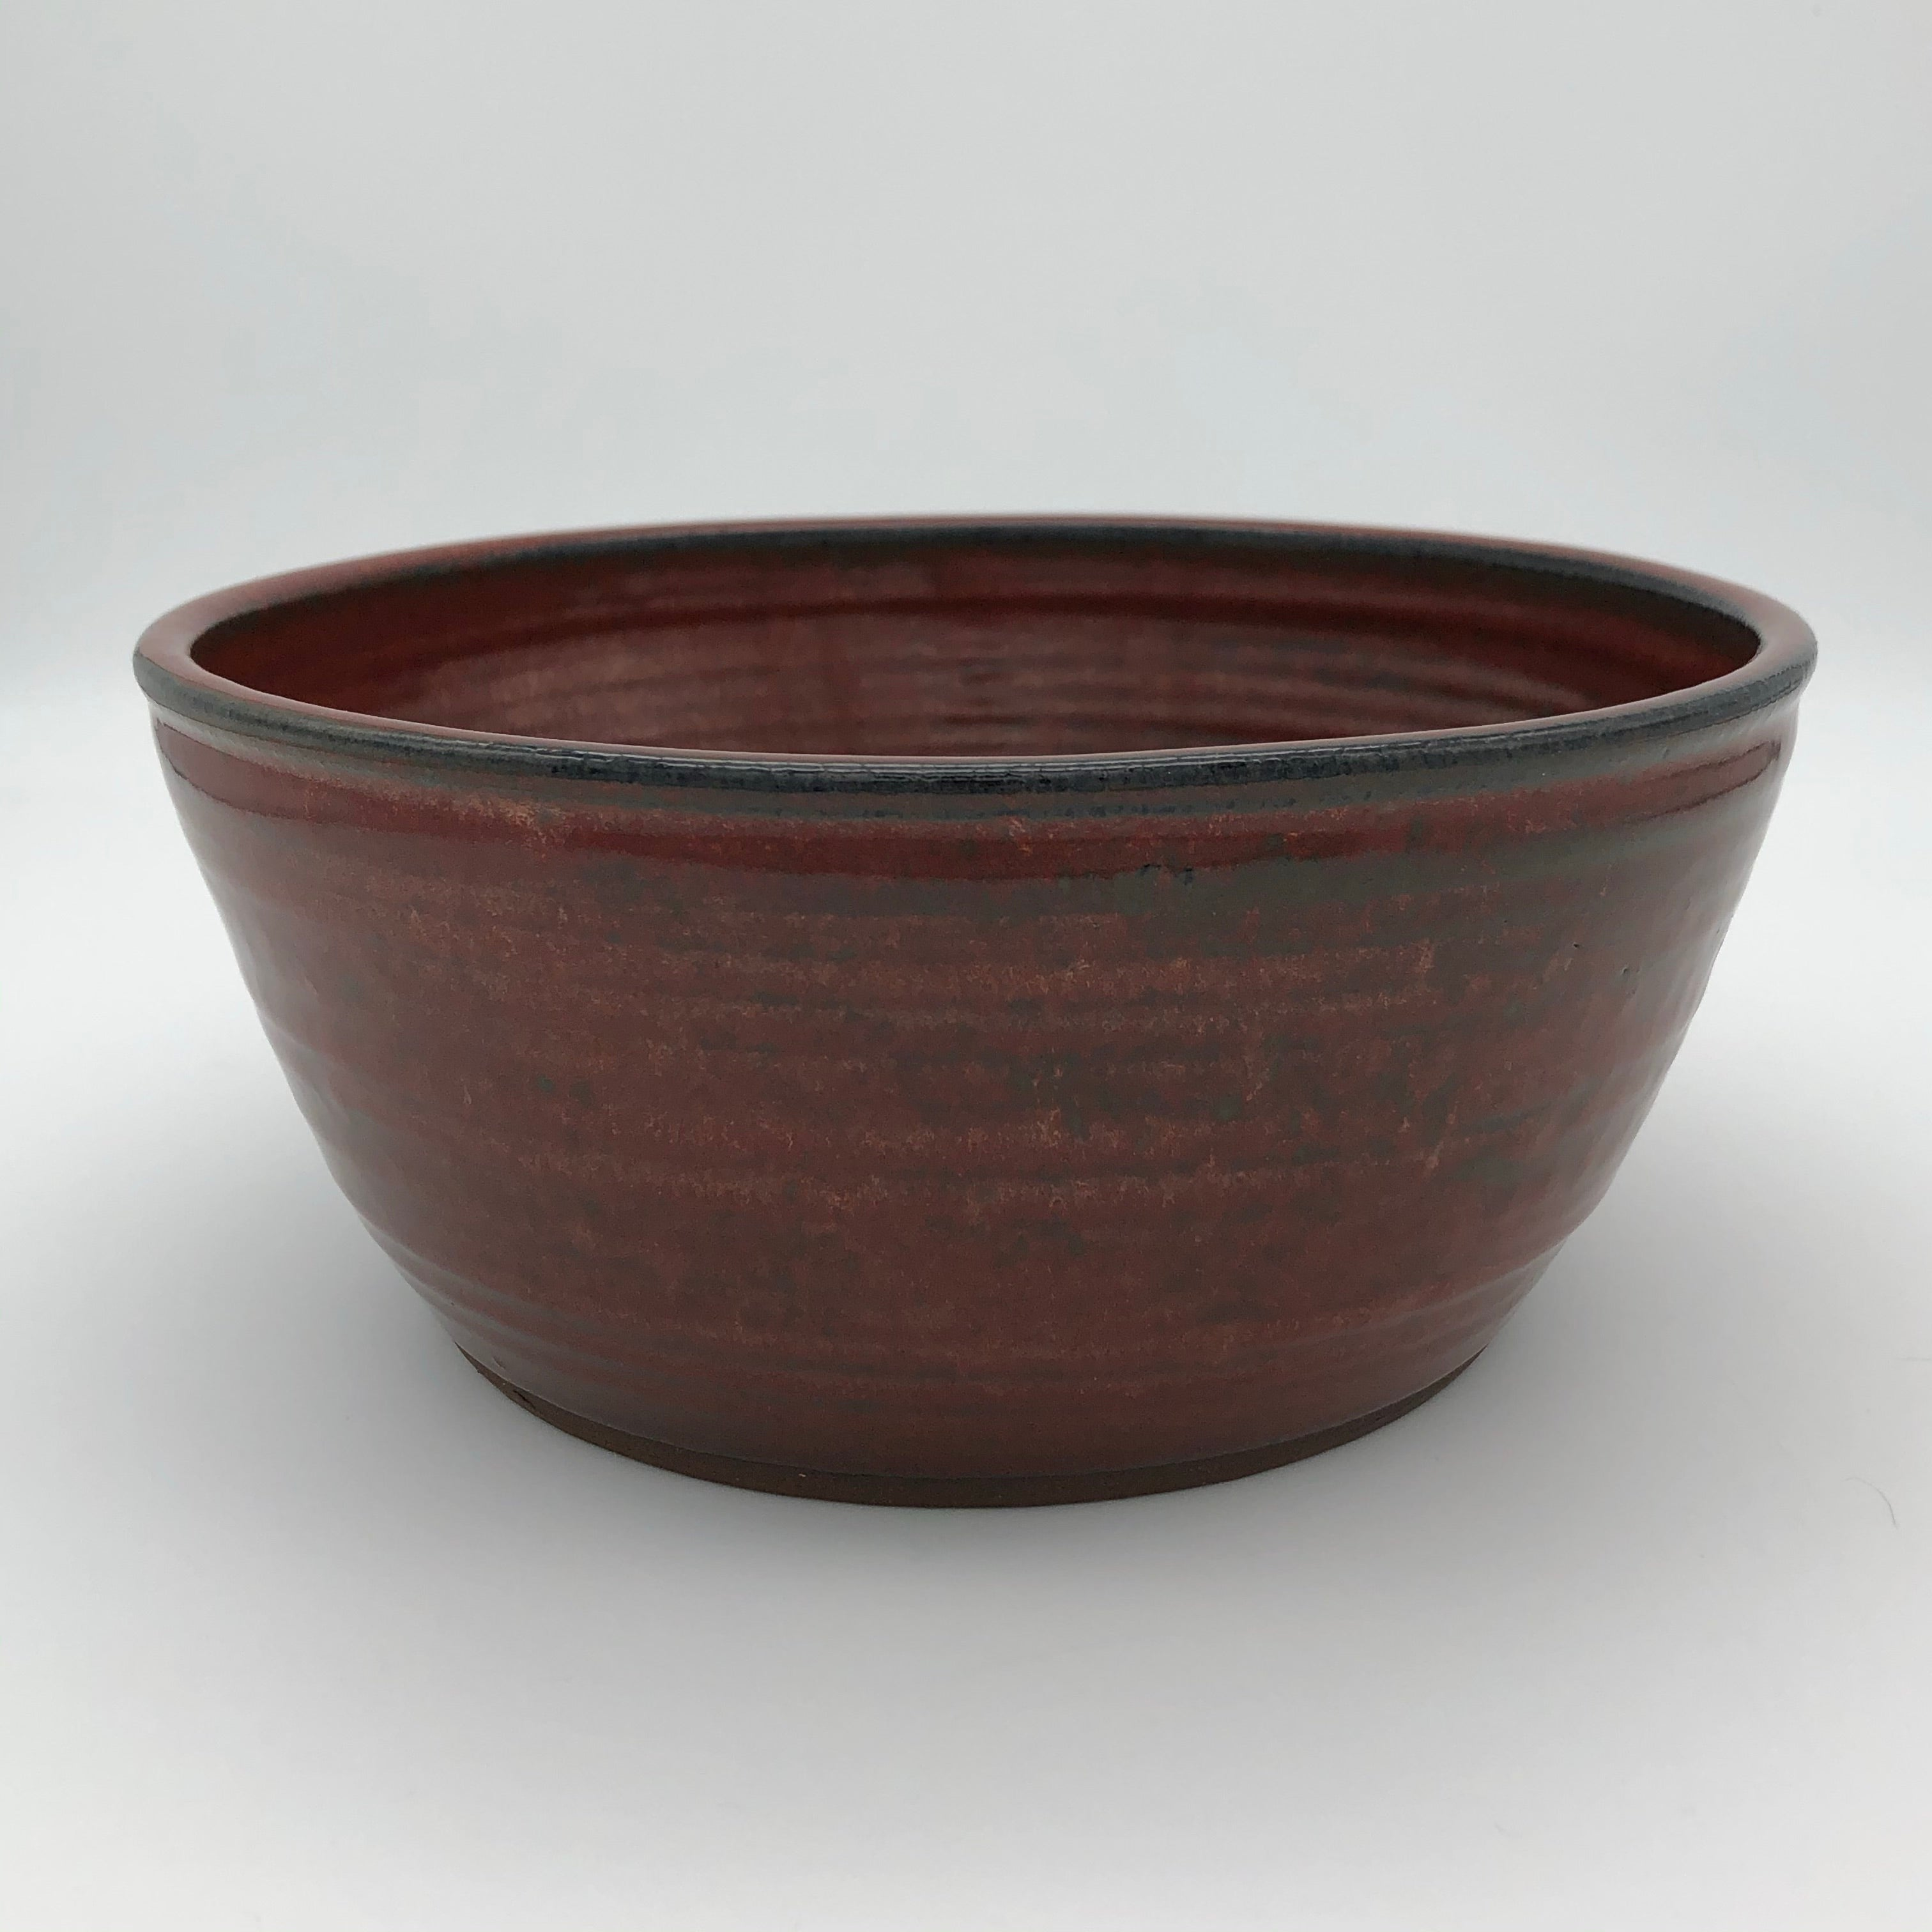 5 cup bowl in Ancient Jasper